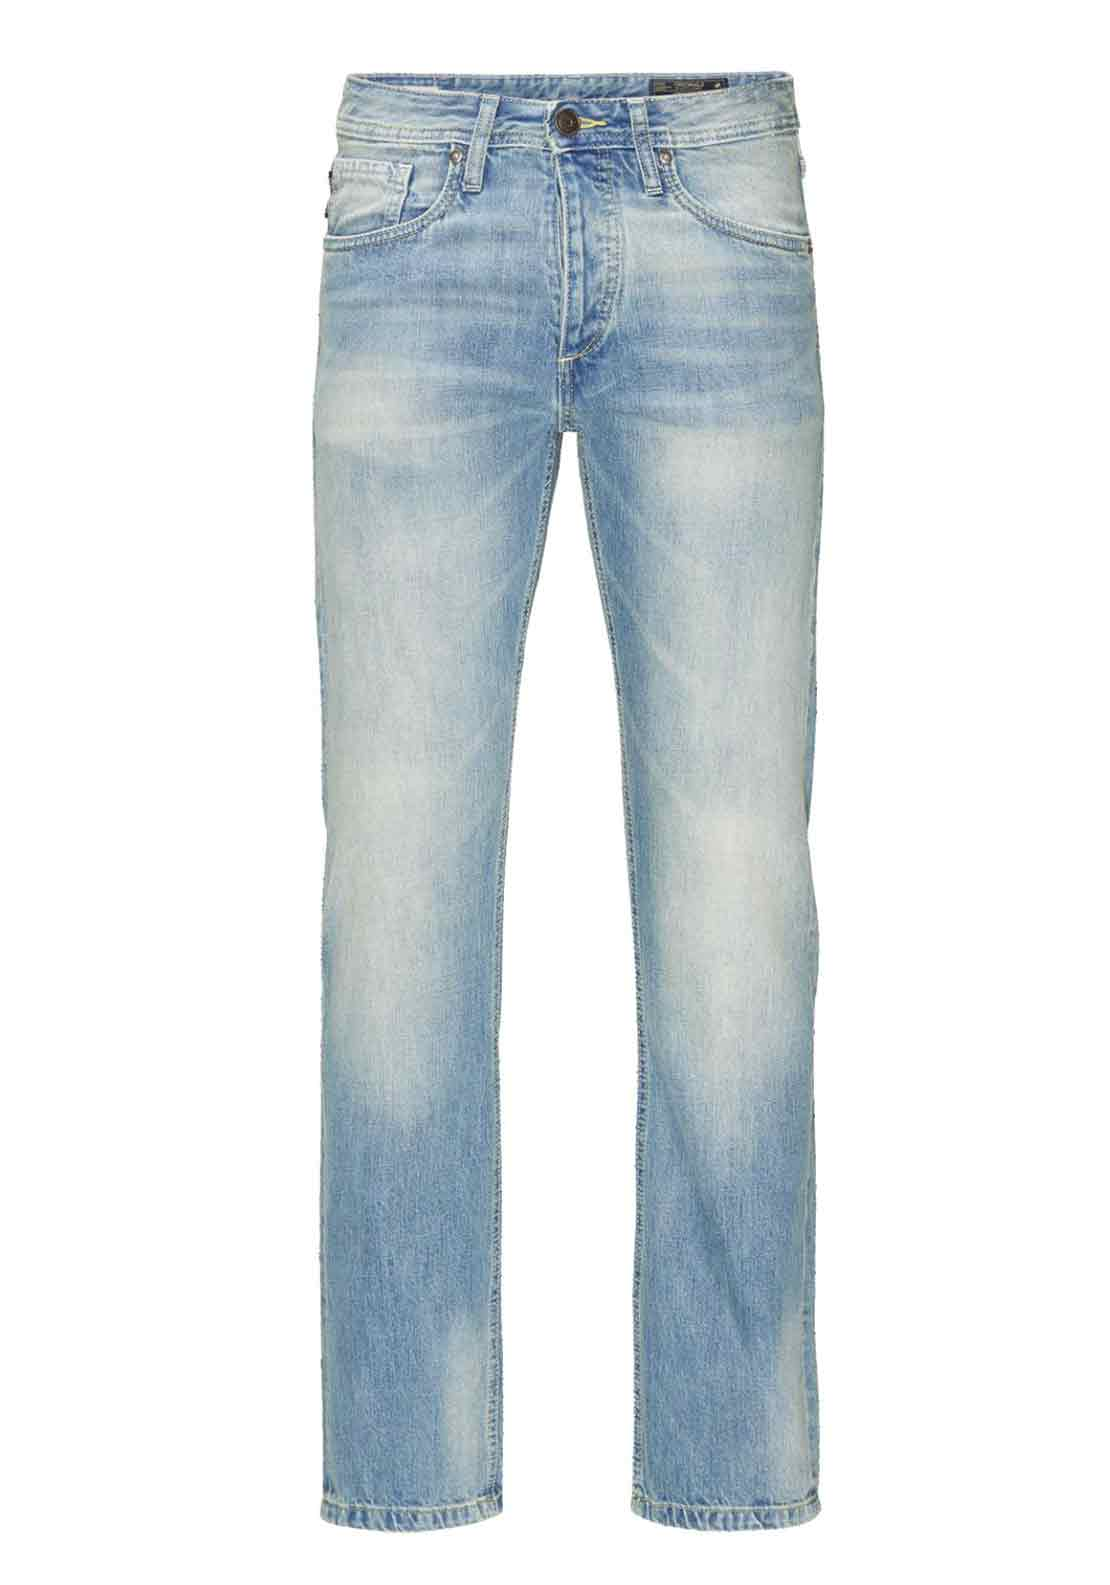 Jack & Jones Clark Regular Fit Faded Jeans, Pale Blue Denim